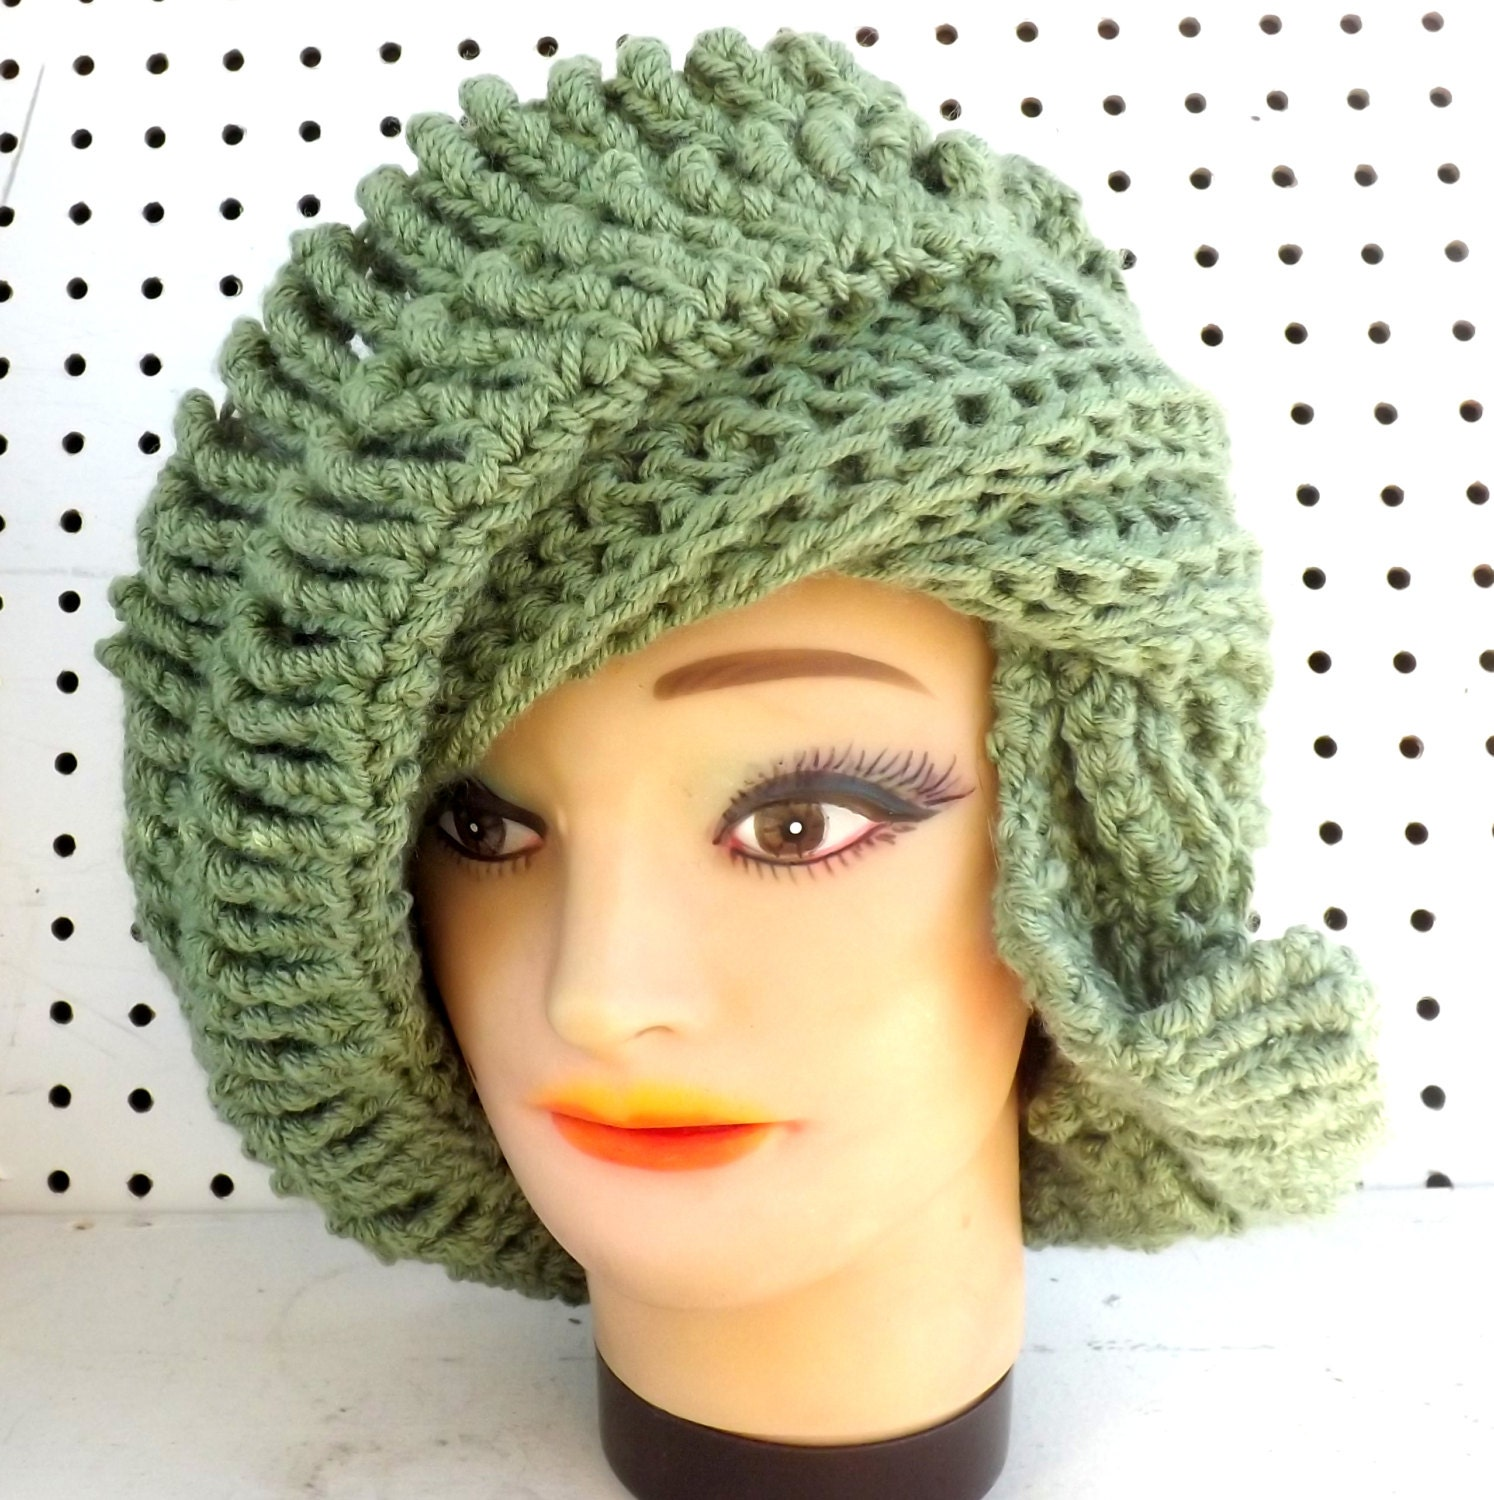 Crochet Pattern, Womens Crochet Hat Pattern, Crochet Beanie Hat ...